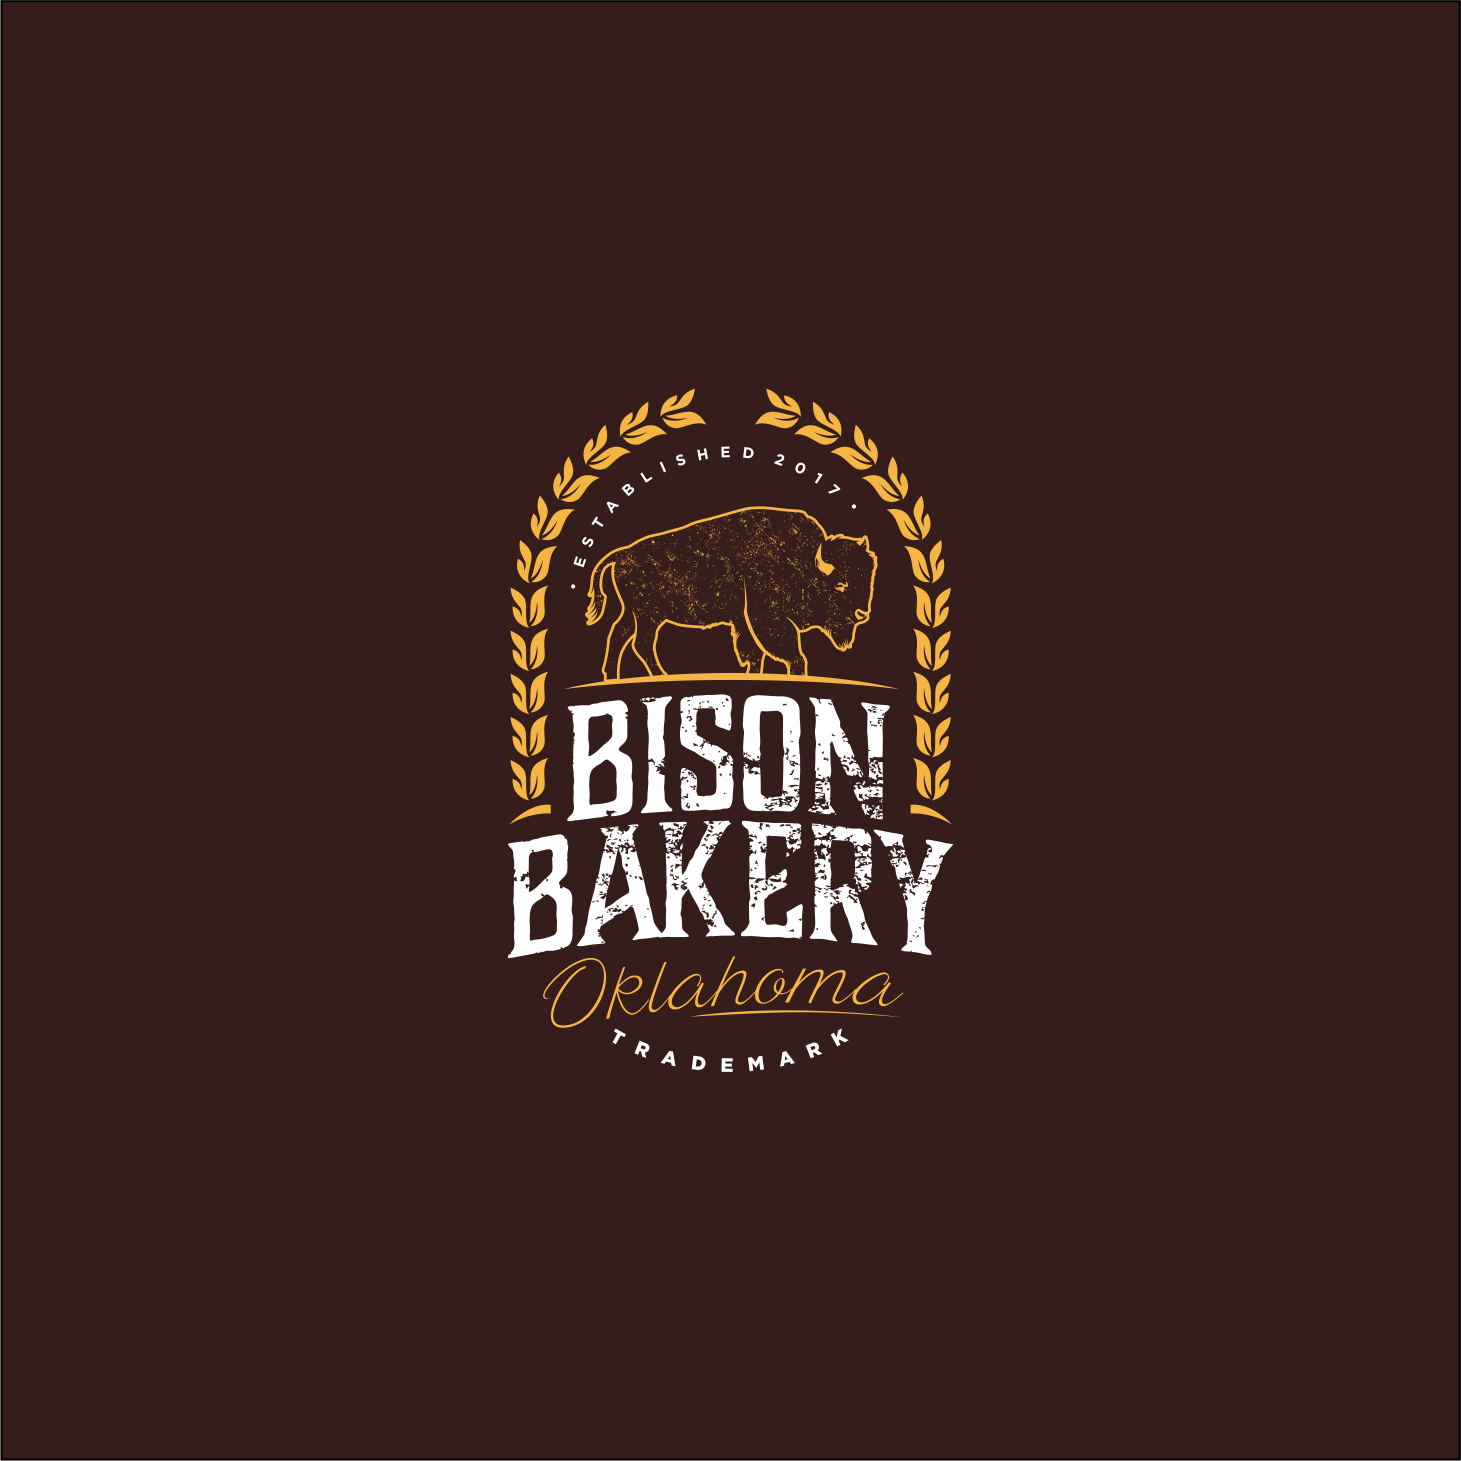 Local Oklahoma bakery needs a rustic/cool logo. Think brewery. - Bison Bakery